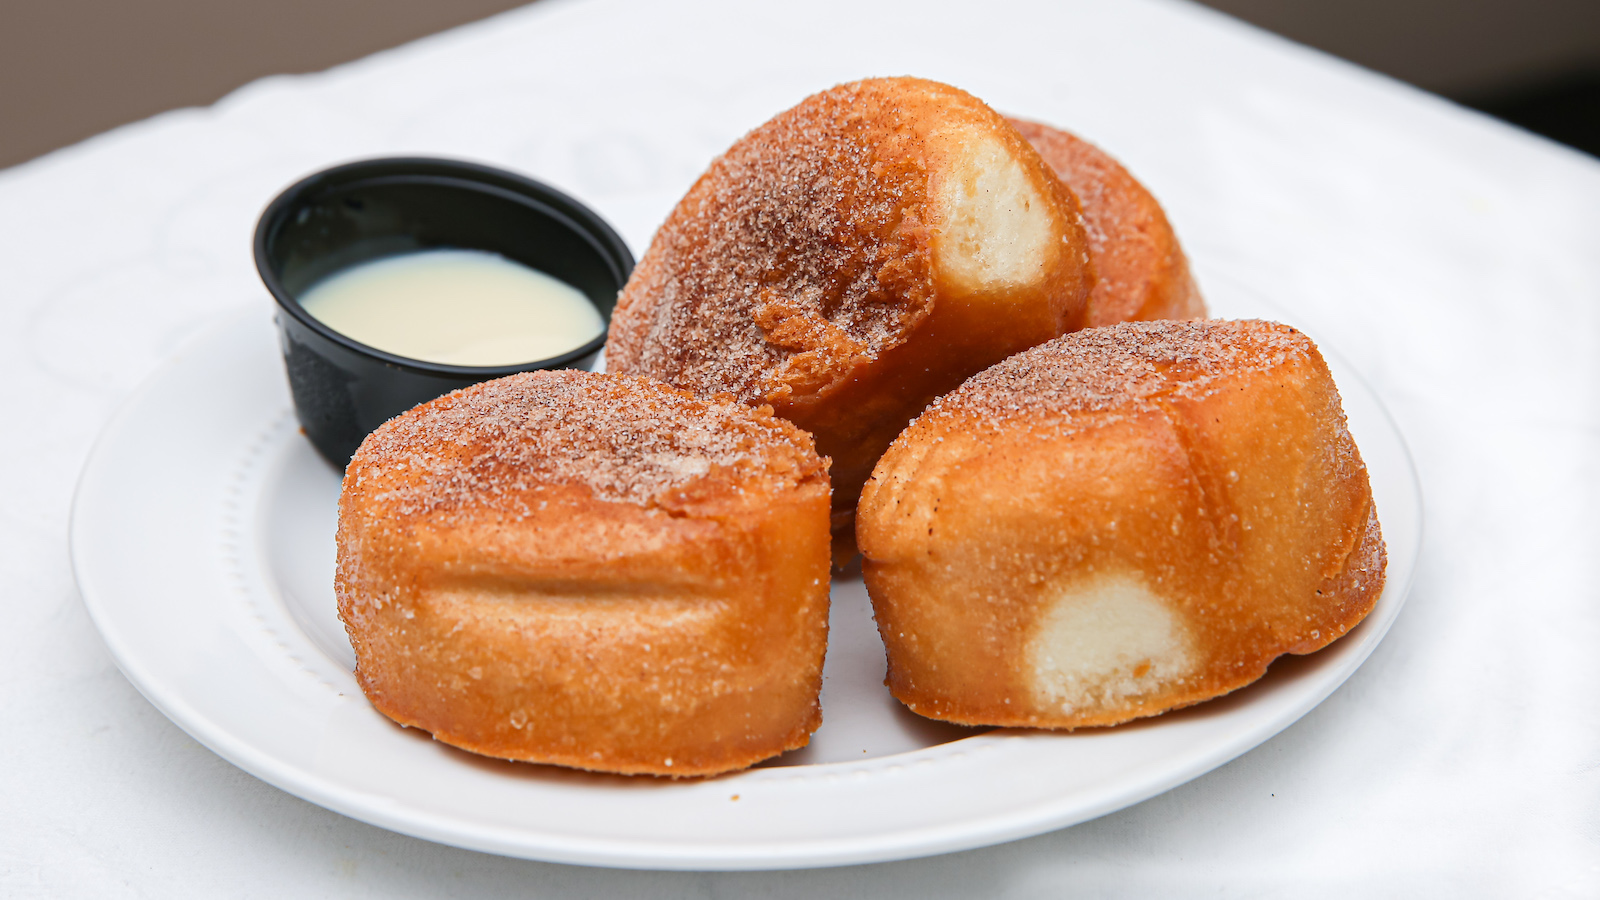 3_Fried Buns with Condensed Milk